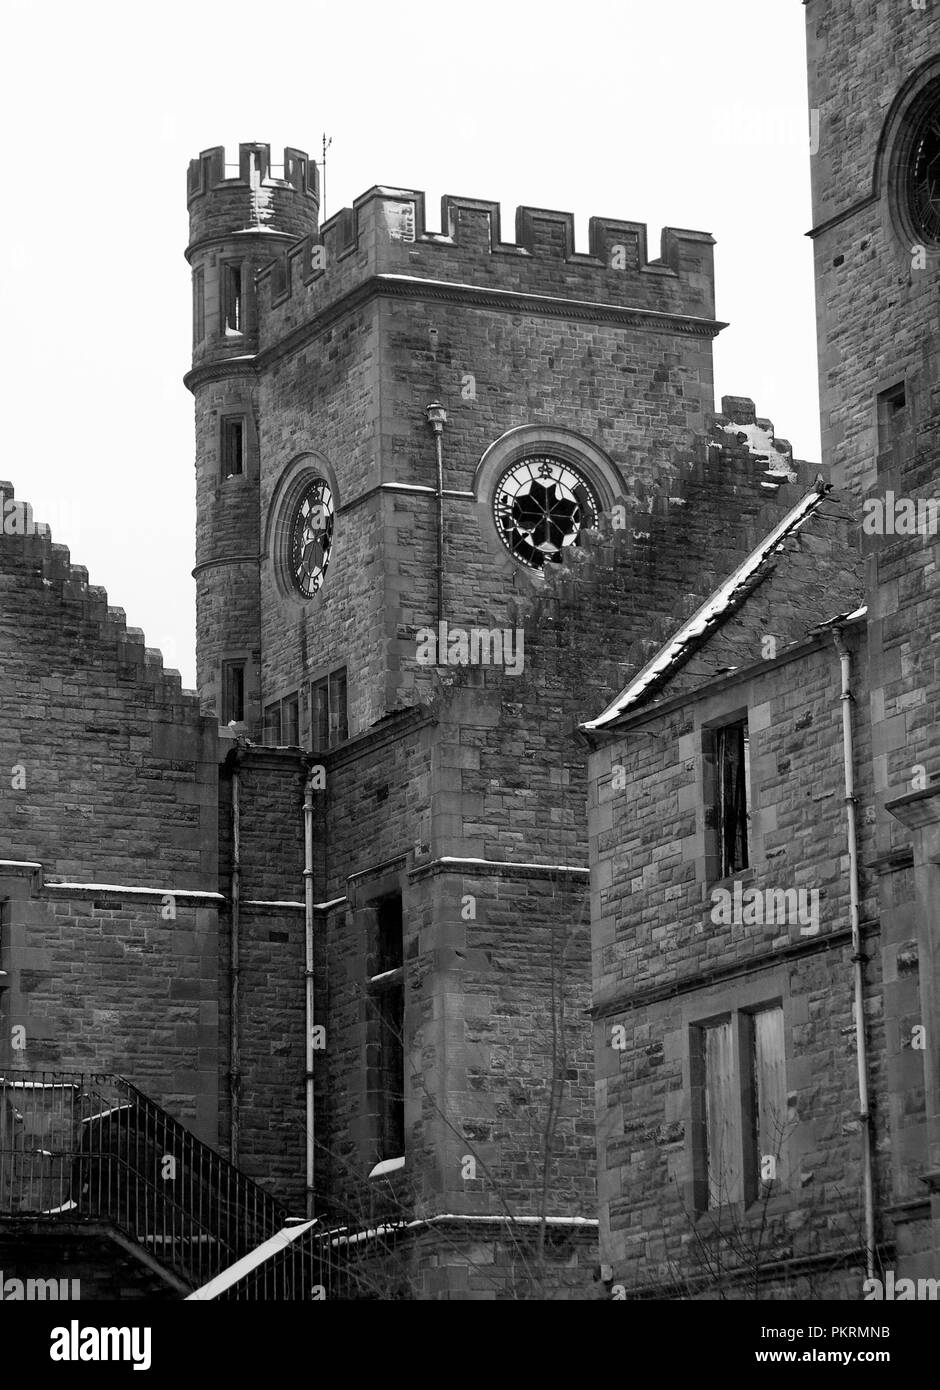 HARTWOOD, SCOTLAND- DECEMBER 03 2011: One of the twin tower clocks at Hartwood Hospital. Hartwood Hospital is a 19th-century psychiatric hospital. - Stock Image